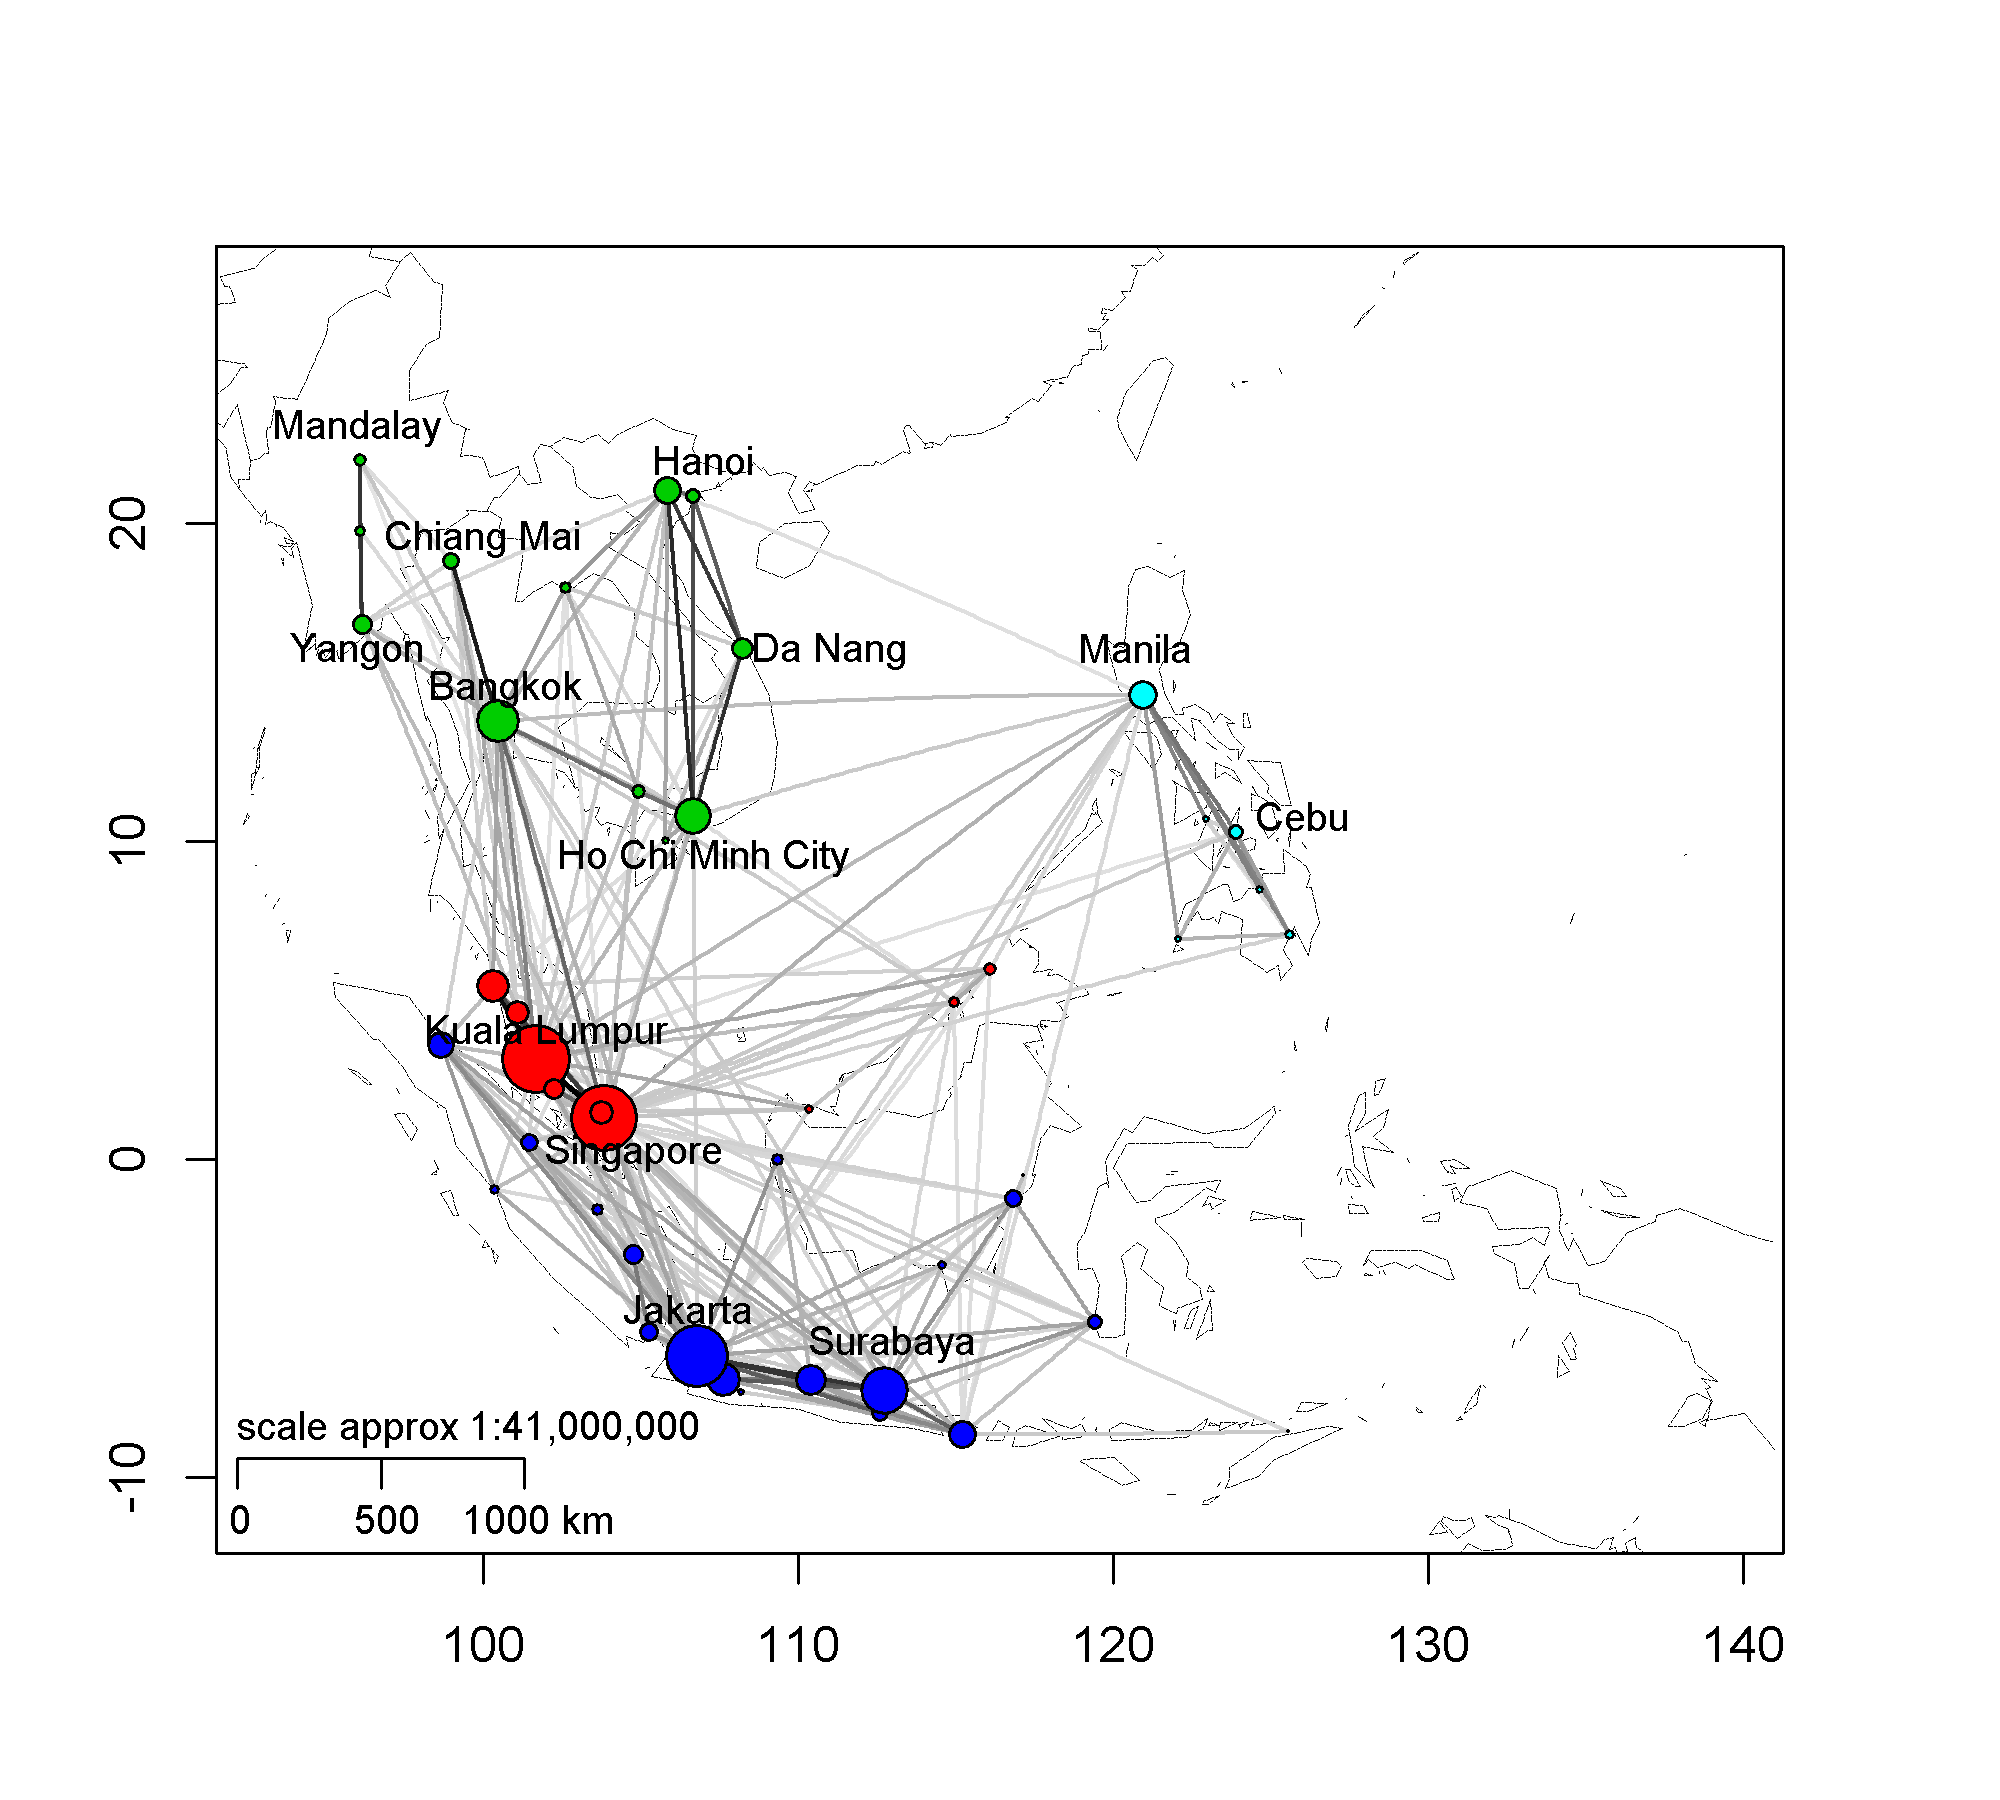 Intercity transportation network between 47 Southeast Asian cities (The circle size reflects cities' number of direct connections; link width and colour are proportional to linkage strength; and the circle colour corresponds to groups of densely connected cities)